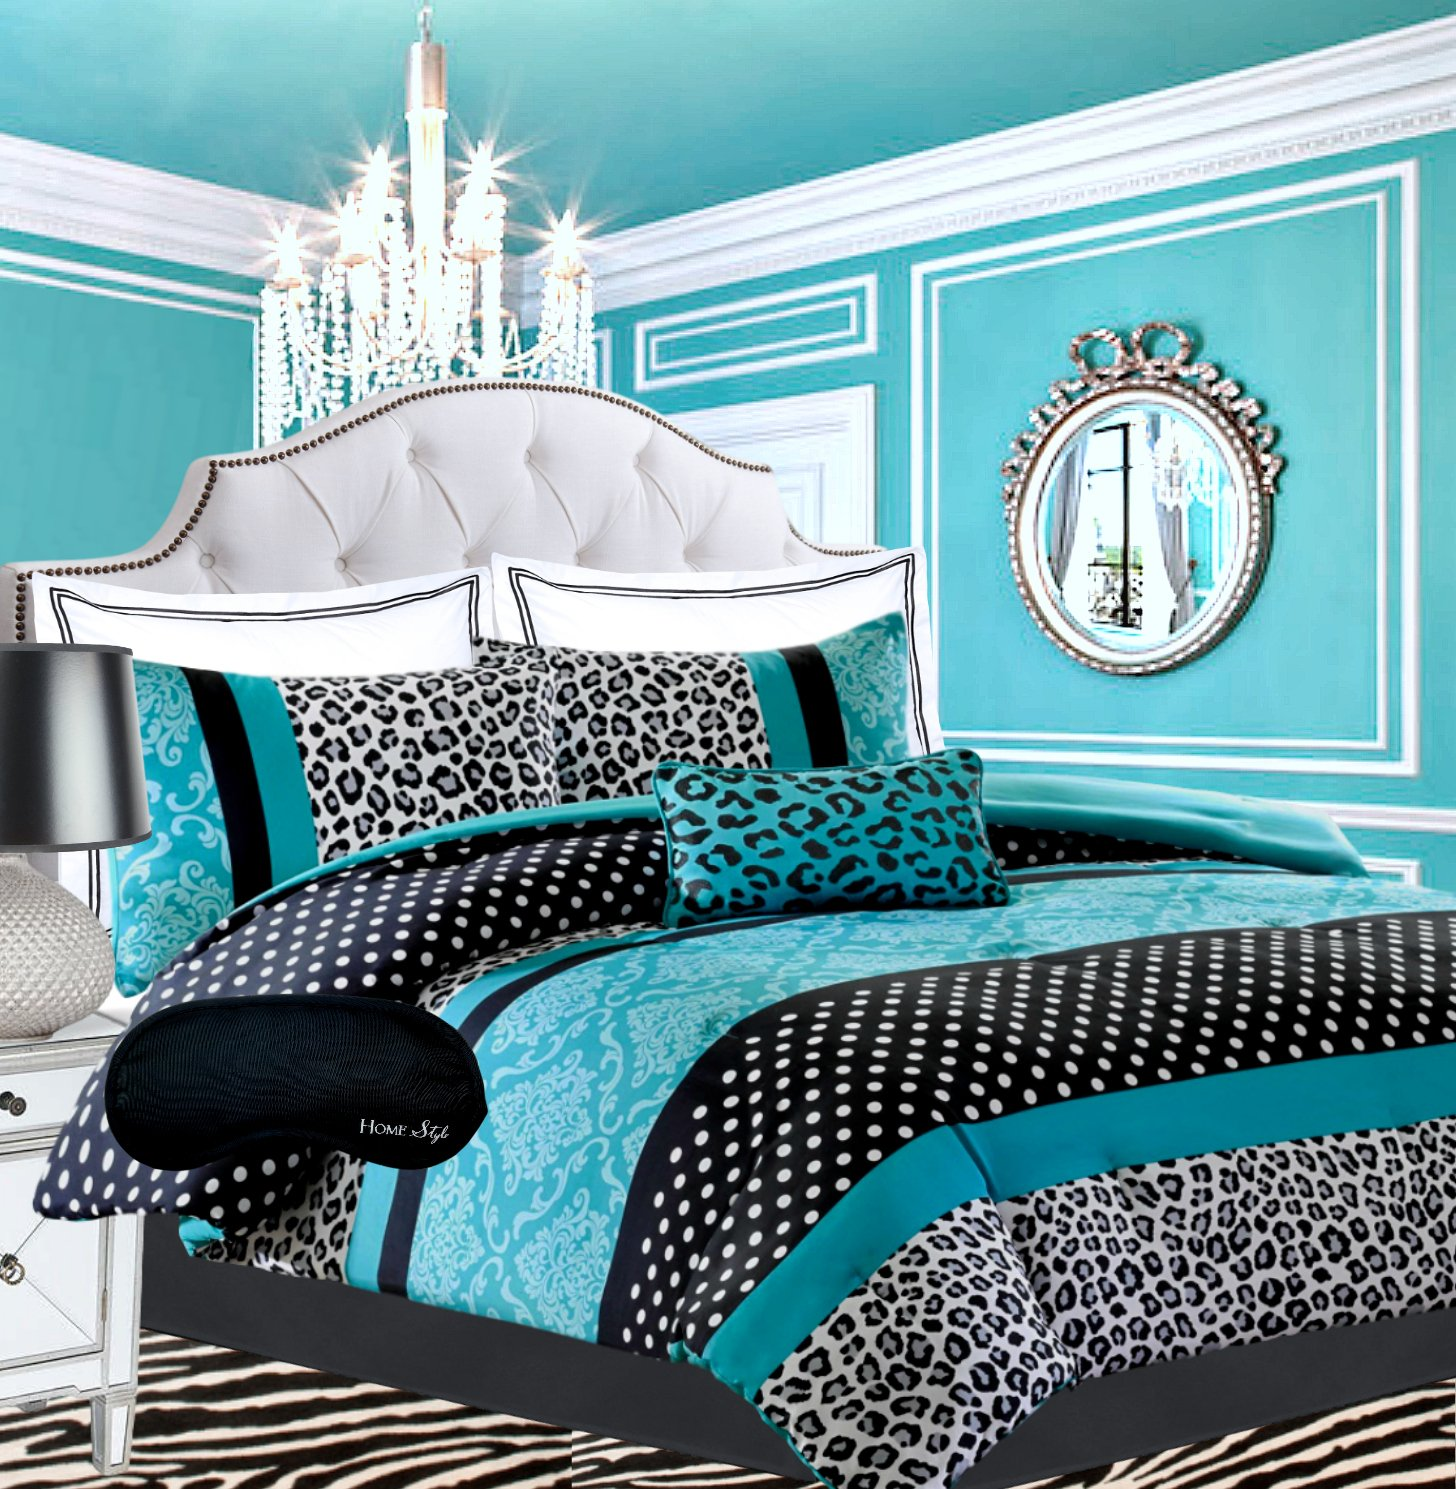 Teen Girls Black Teal Bedding Comforter Damask Leopard